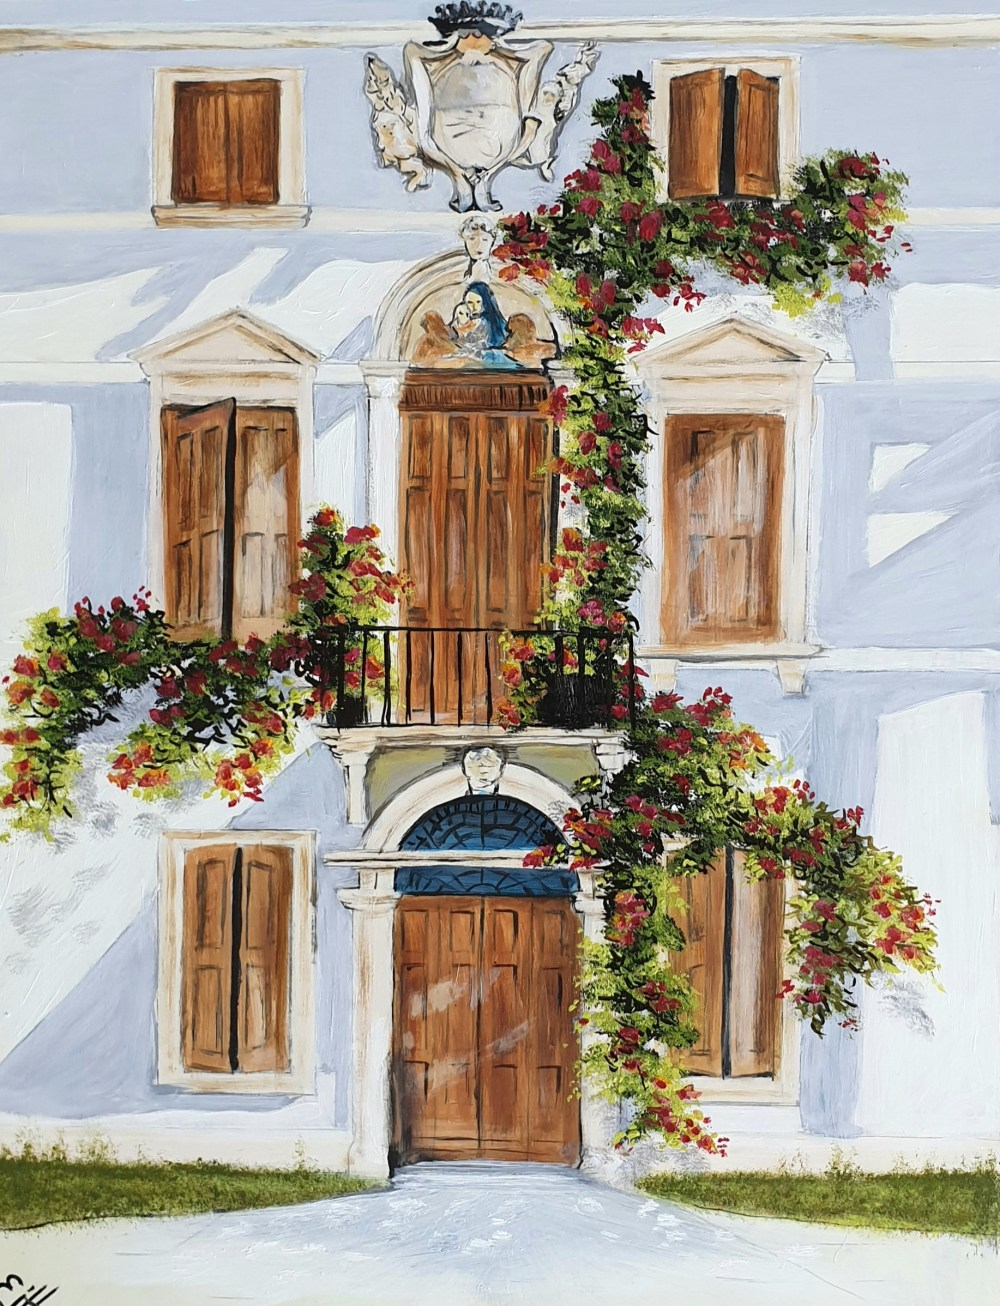 "A grand house in Scala on the Amalfi Coast in Italy, with rambling flowers adorning it's façade. This is a 9x12"" (A4) premium quality giclée art print from an original oil painting by UK artist Ellisa Hague. Other pieces in this series are available, please visit www.EllisaHagueOriginal.com or visit the Etsy Shop to view them."